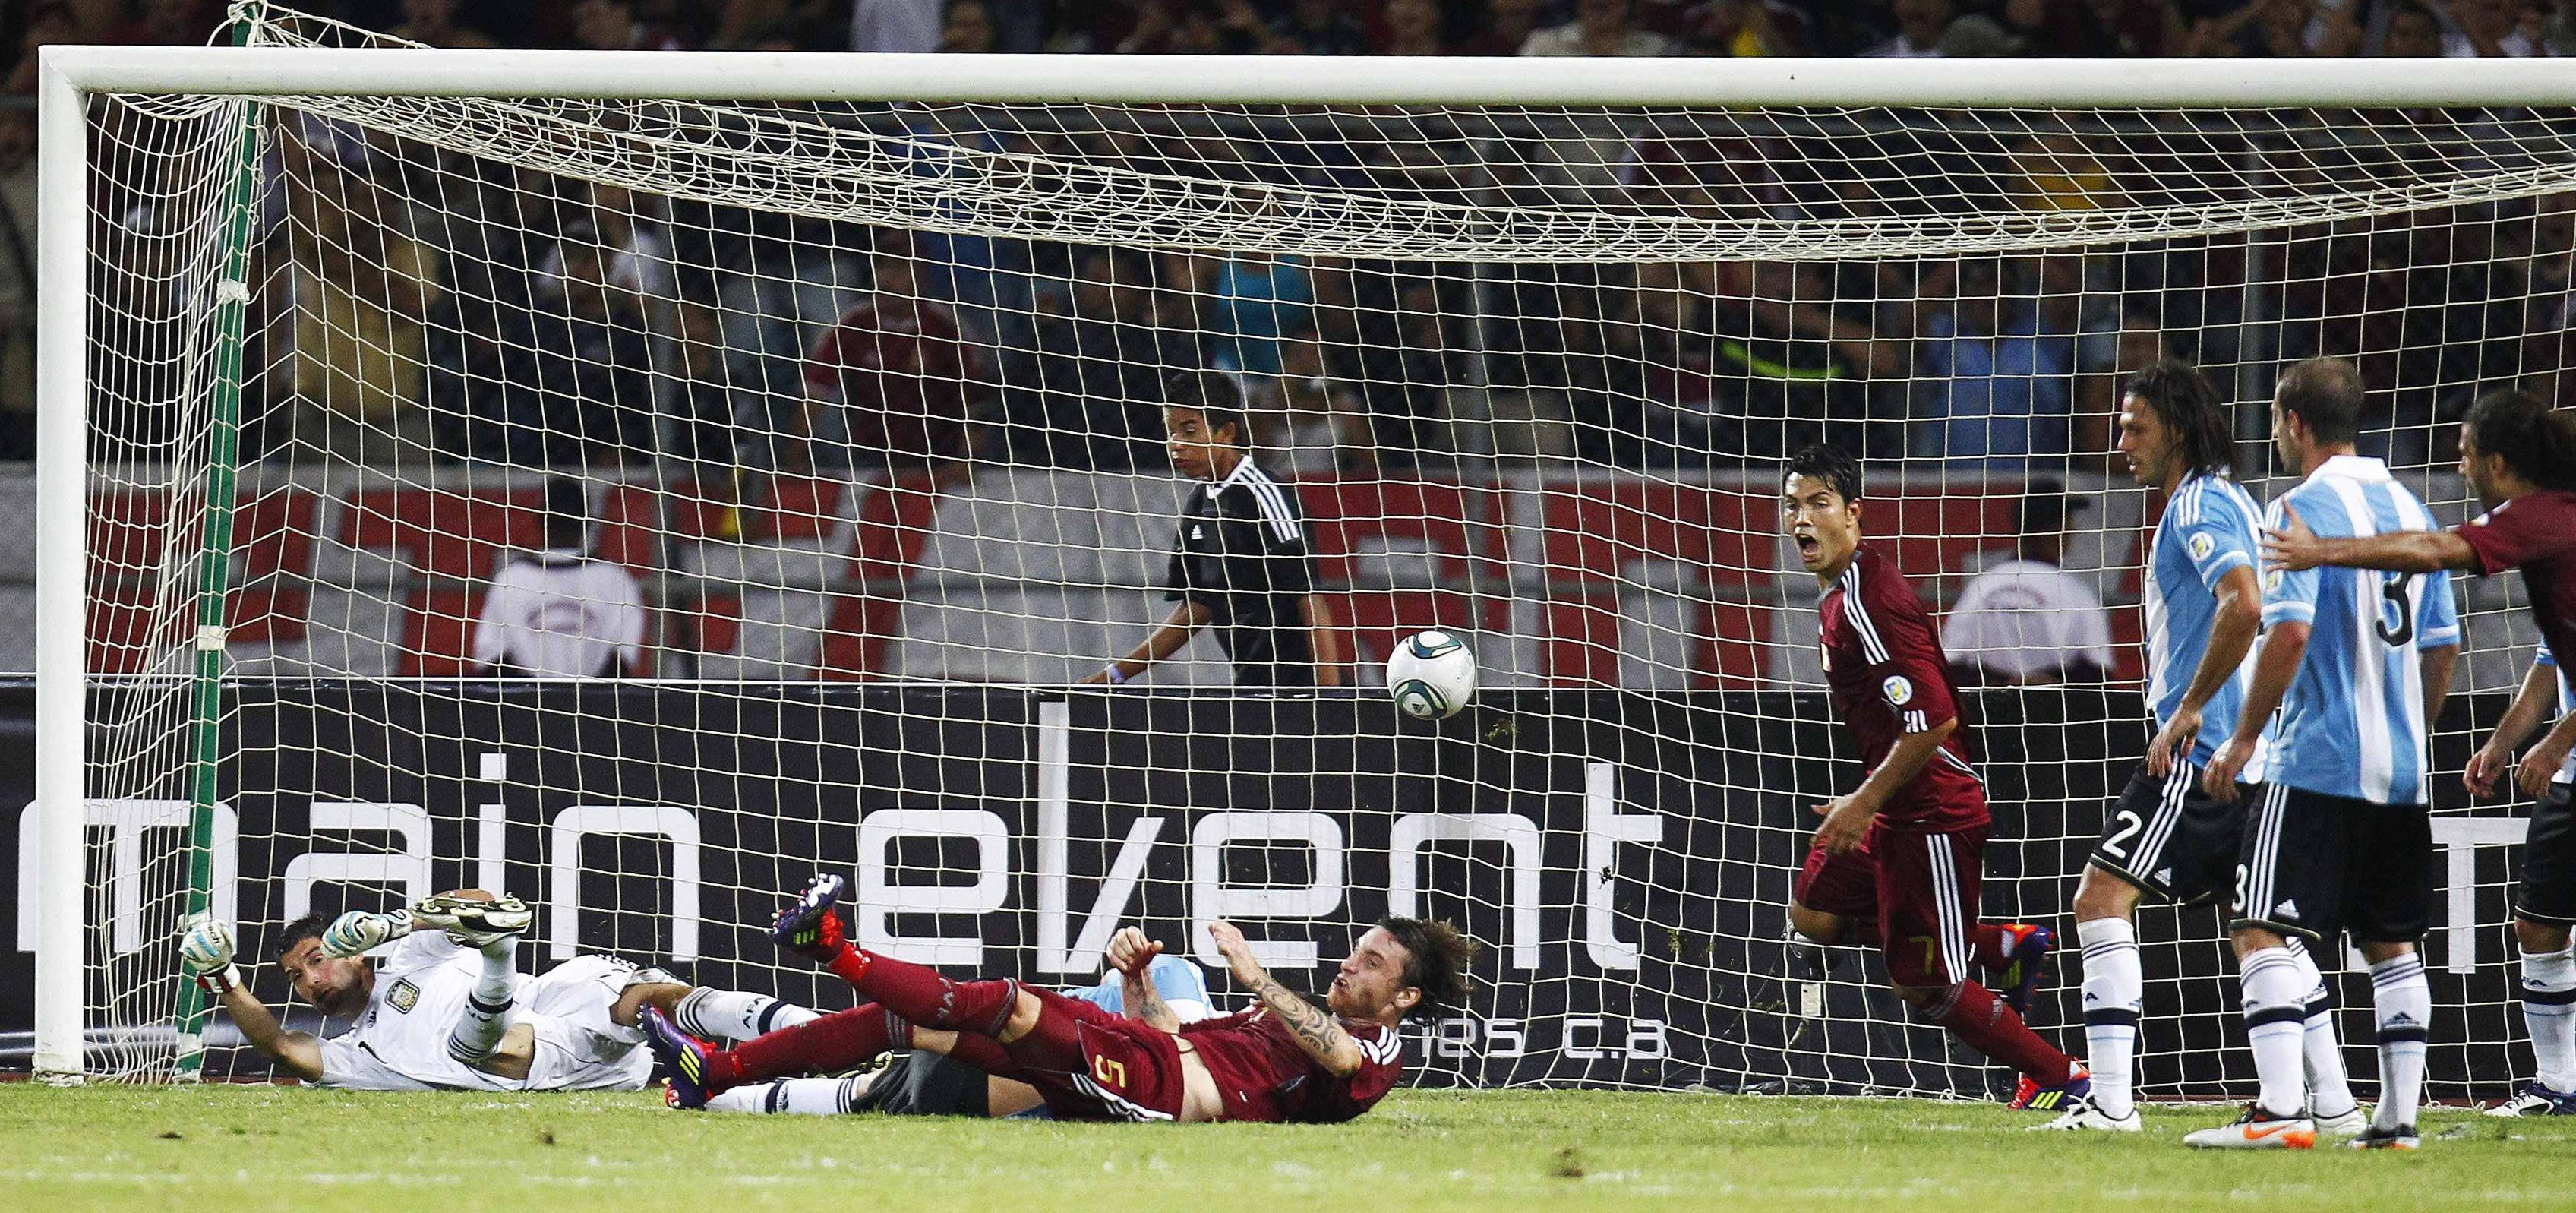 Venezuela's Fernando Amorebieta (5, on the ground) scores against Argentina during their World Cup 2014 qualifying soccer match in Puerto La Cruz October 11, 2011.     REUTERS/Jorge Silva (VENEZUELA  - Tags: SPORT SOCCER)